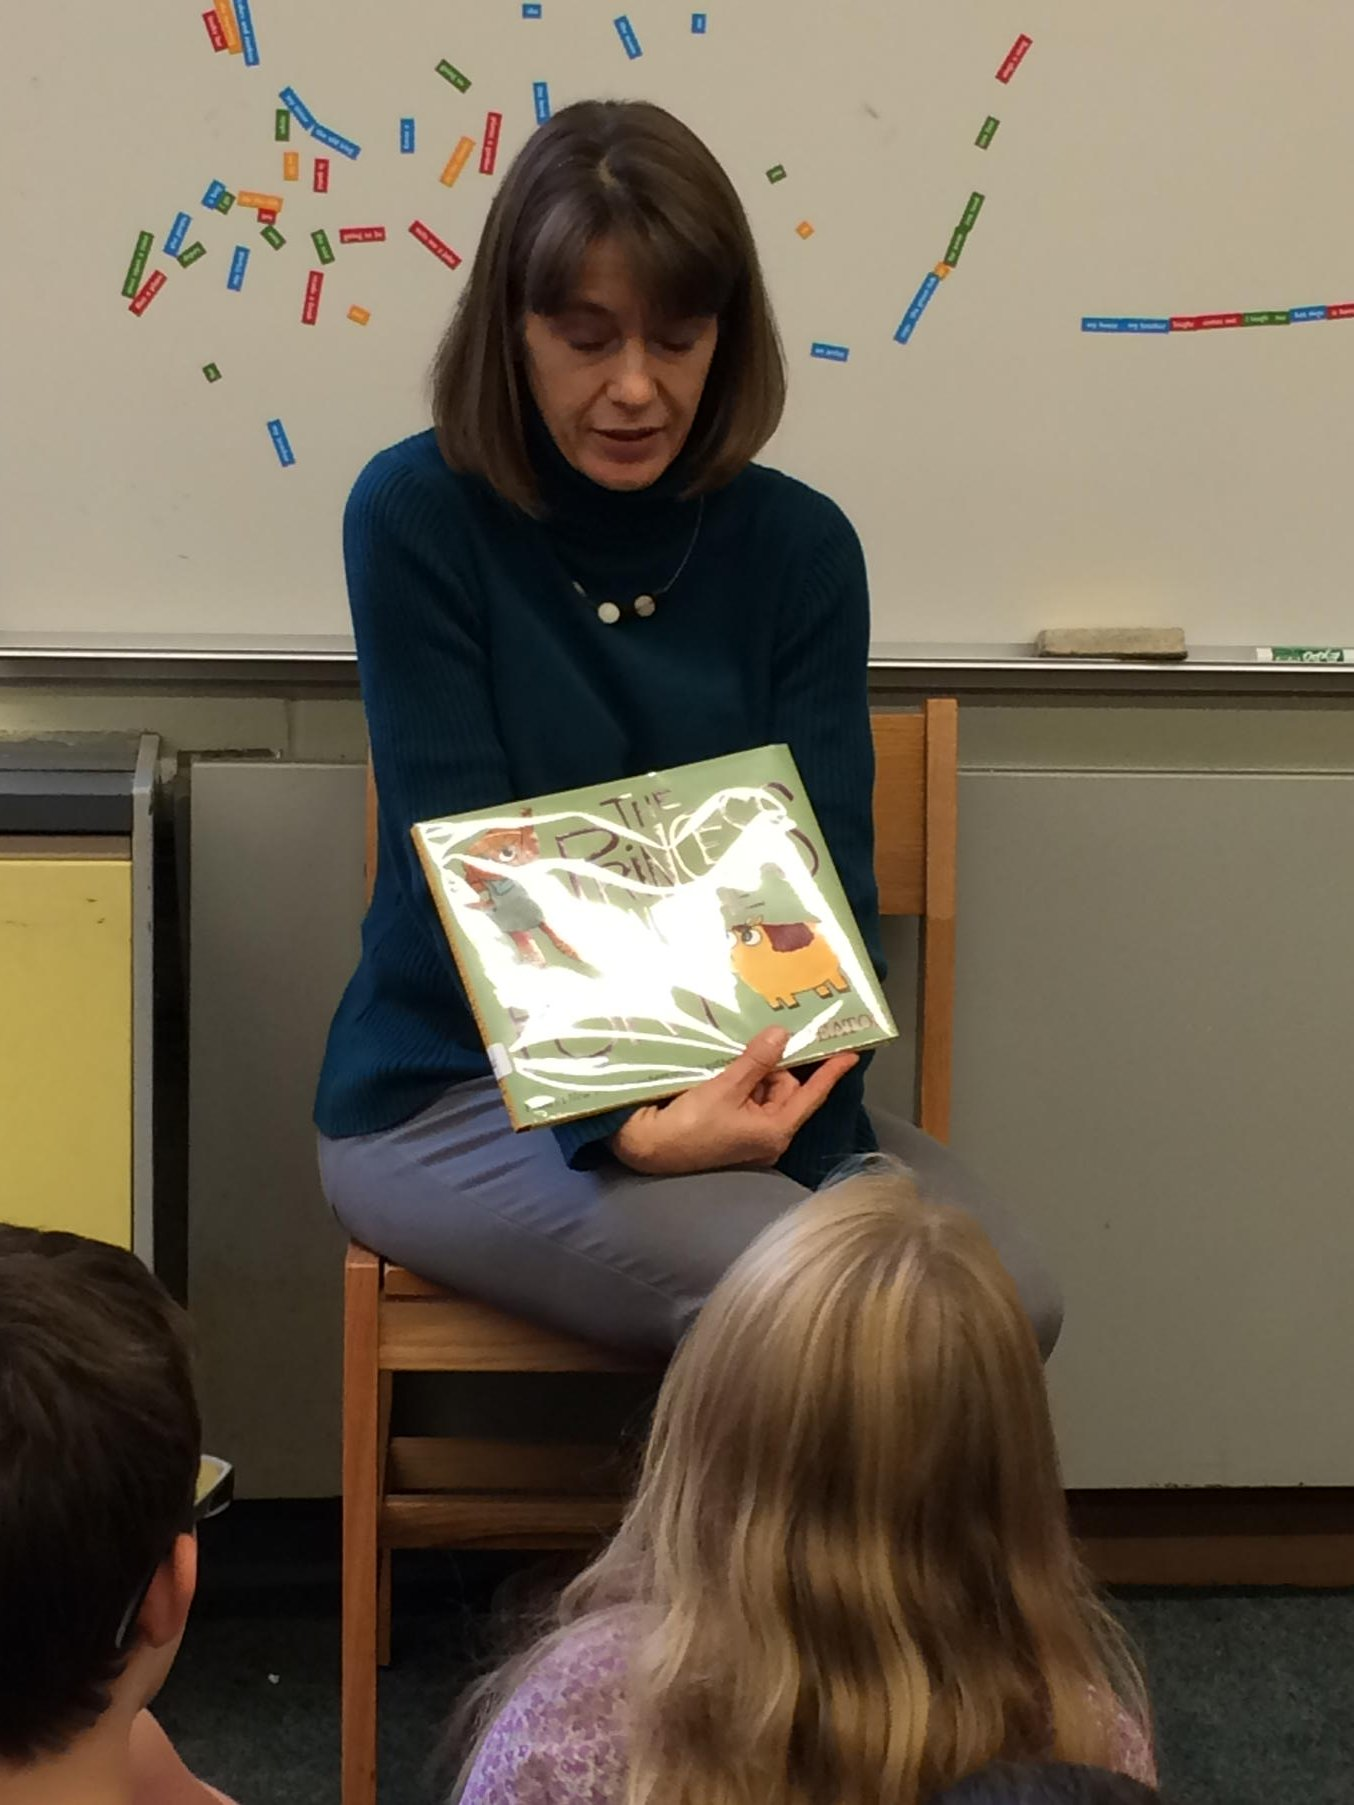 Library read aloud is our favorite time of week! The Princess and the Pony #wsdvt @wsdvt https://t.co/ieUT53Xi3W